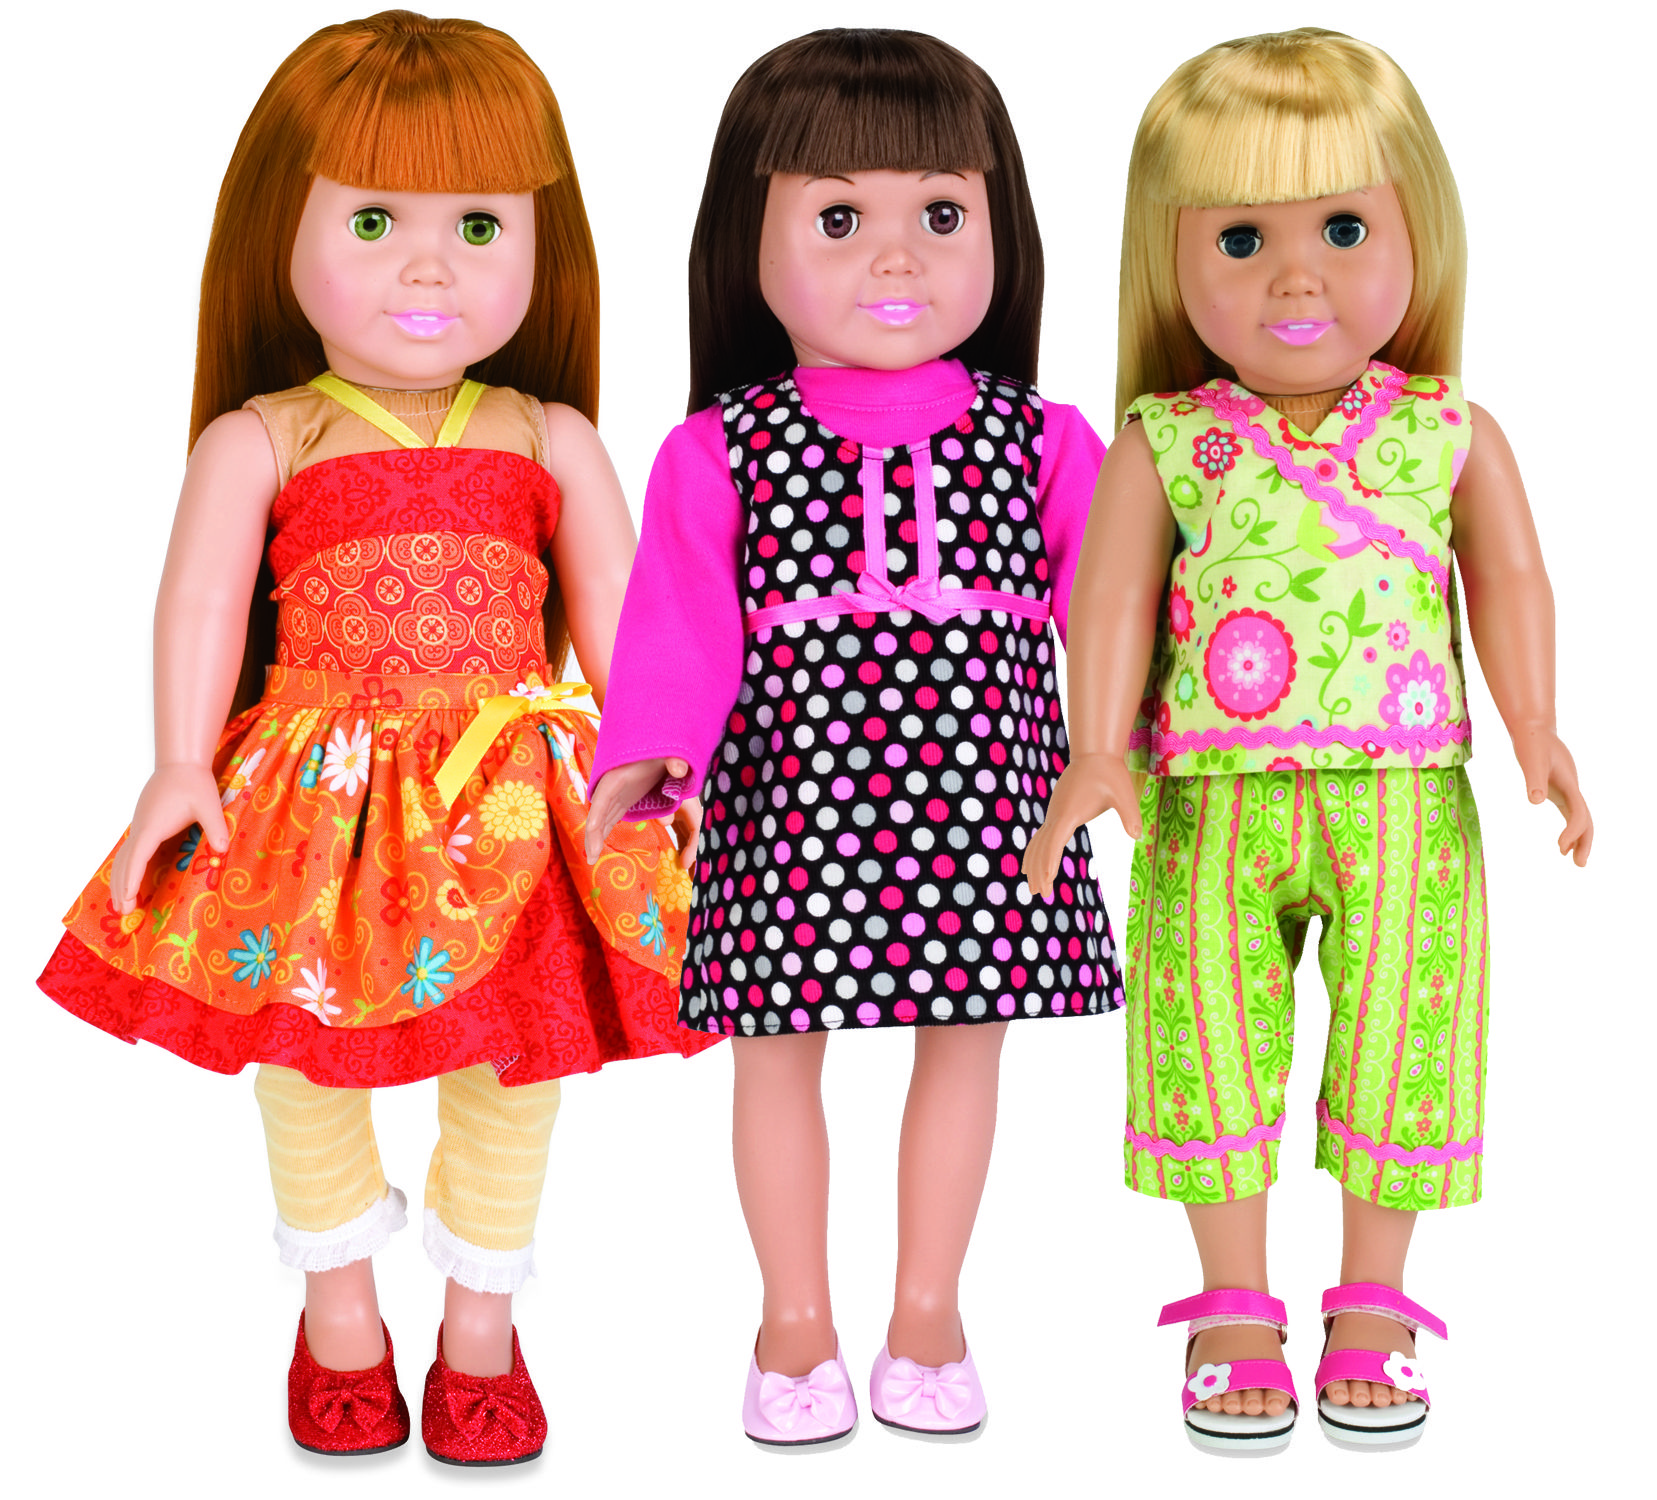 Sew Doll Clothes in 30 minutes—part two | Waldorf, Puppenkleidung ...